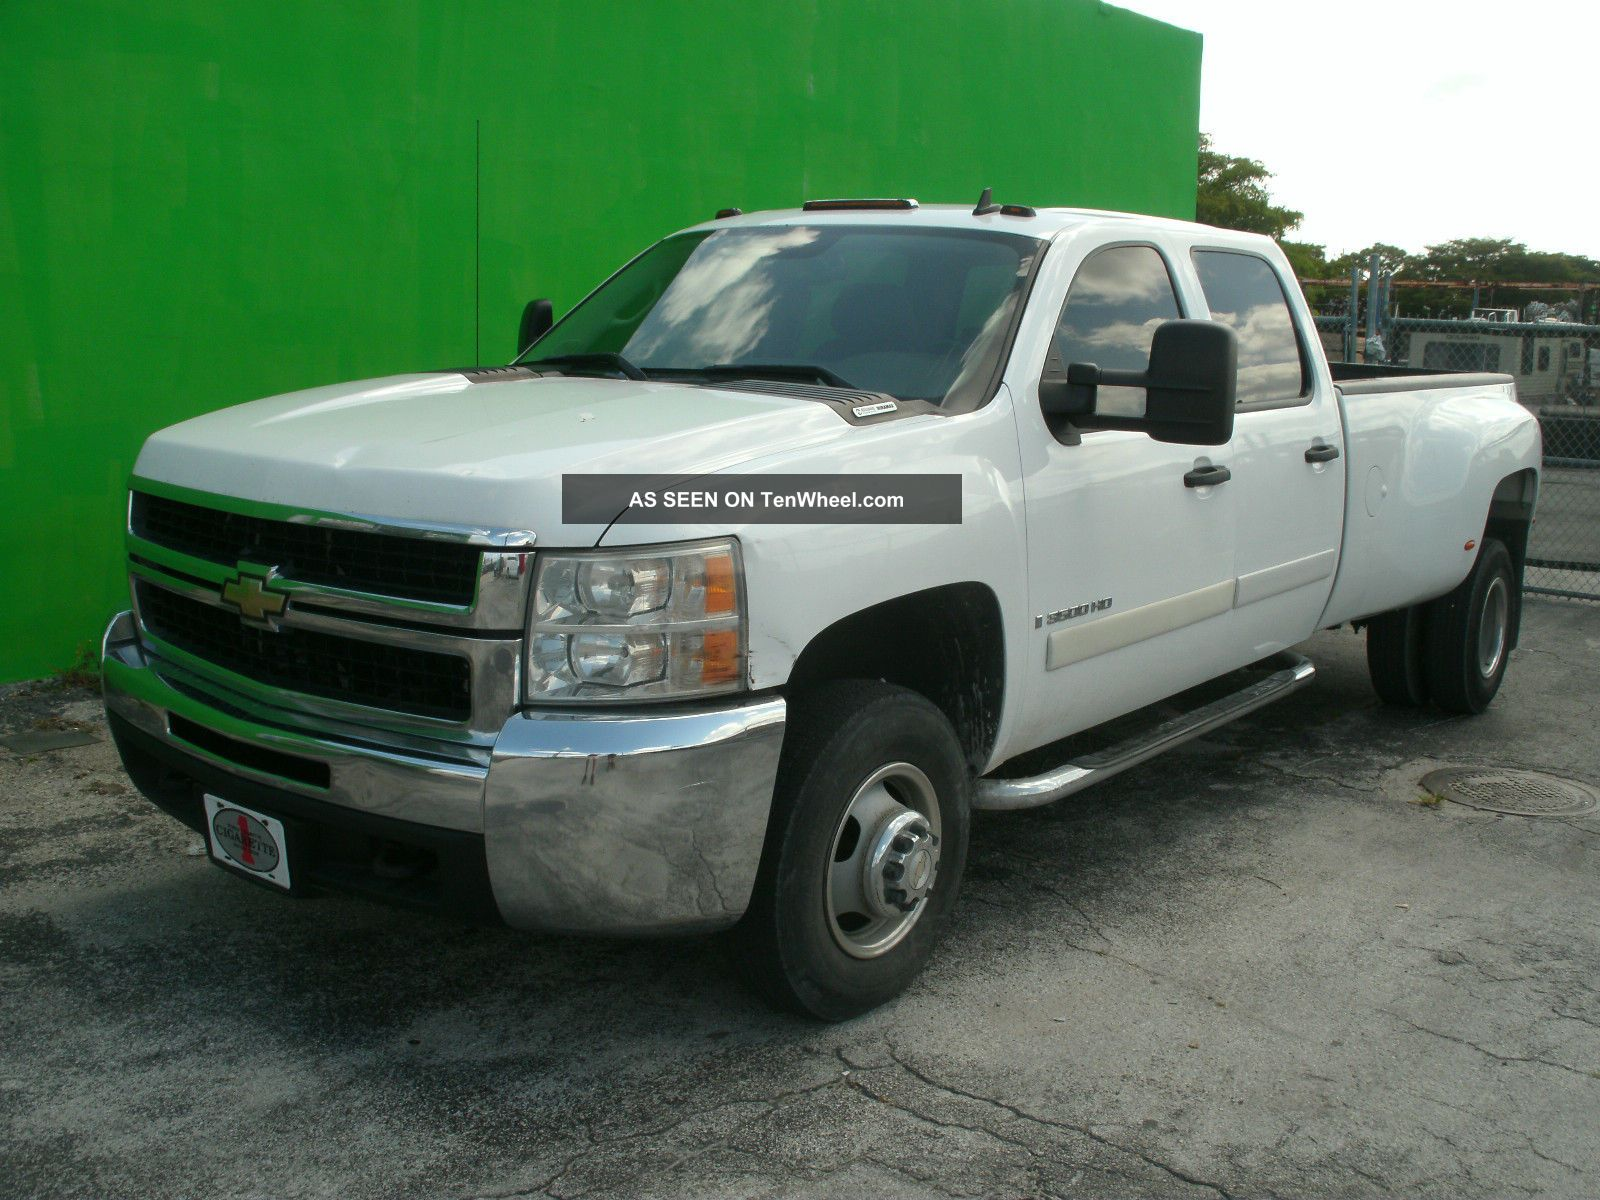 2007 chevrolet silverado lt 3500 hd crew cab 4 door 6 6l duramax turbo diesel. Black Bedroom Furniture Sets. Home Design Ideas